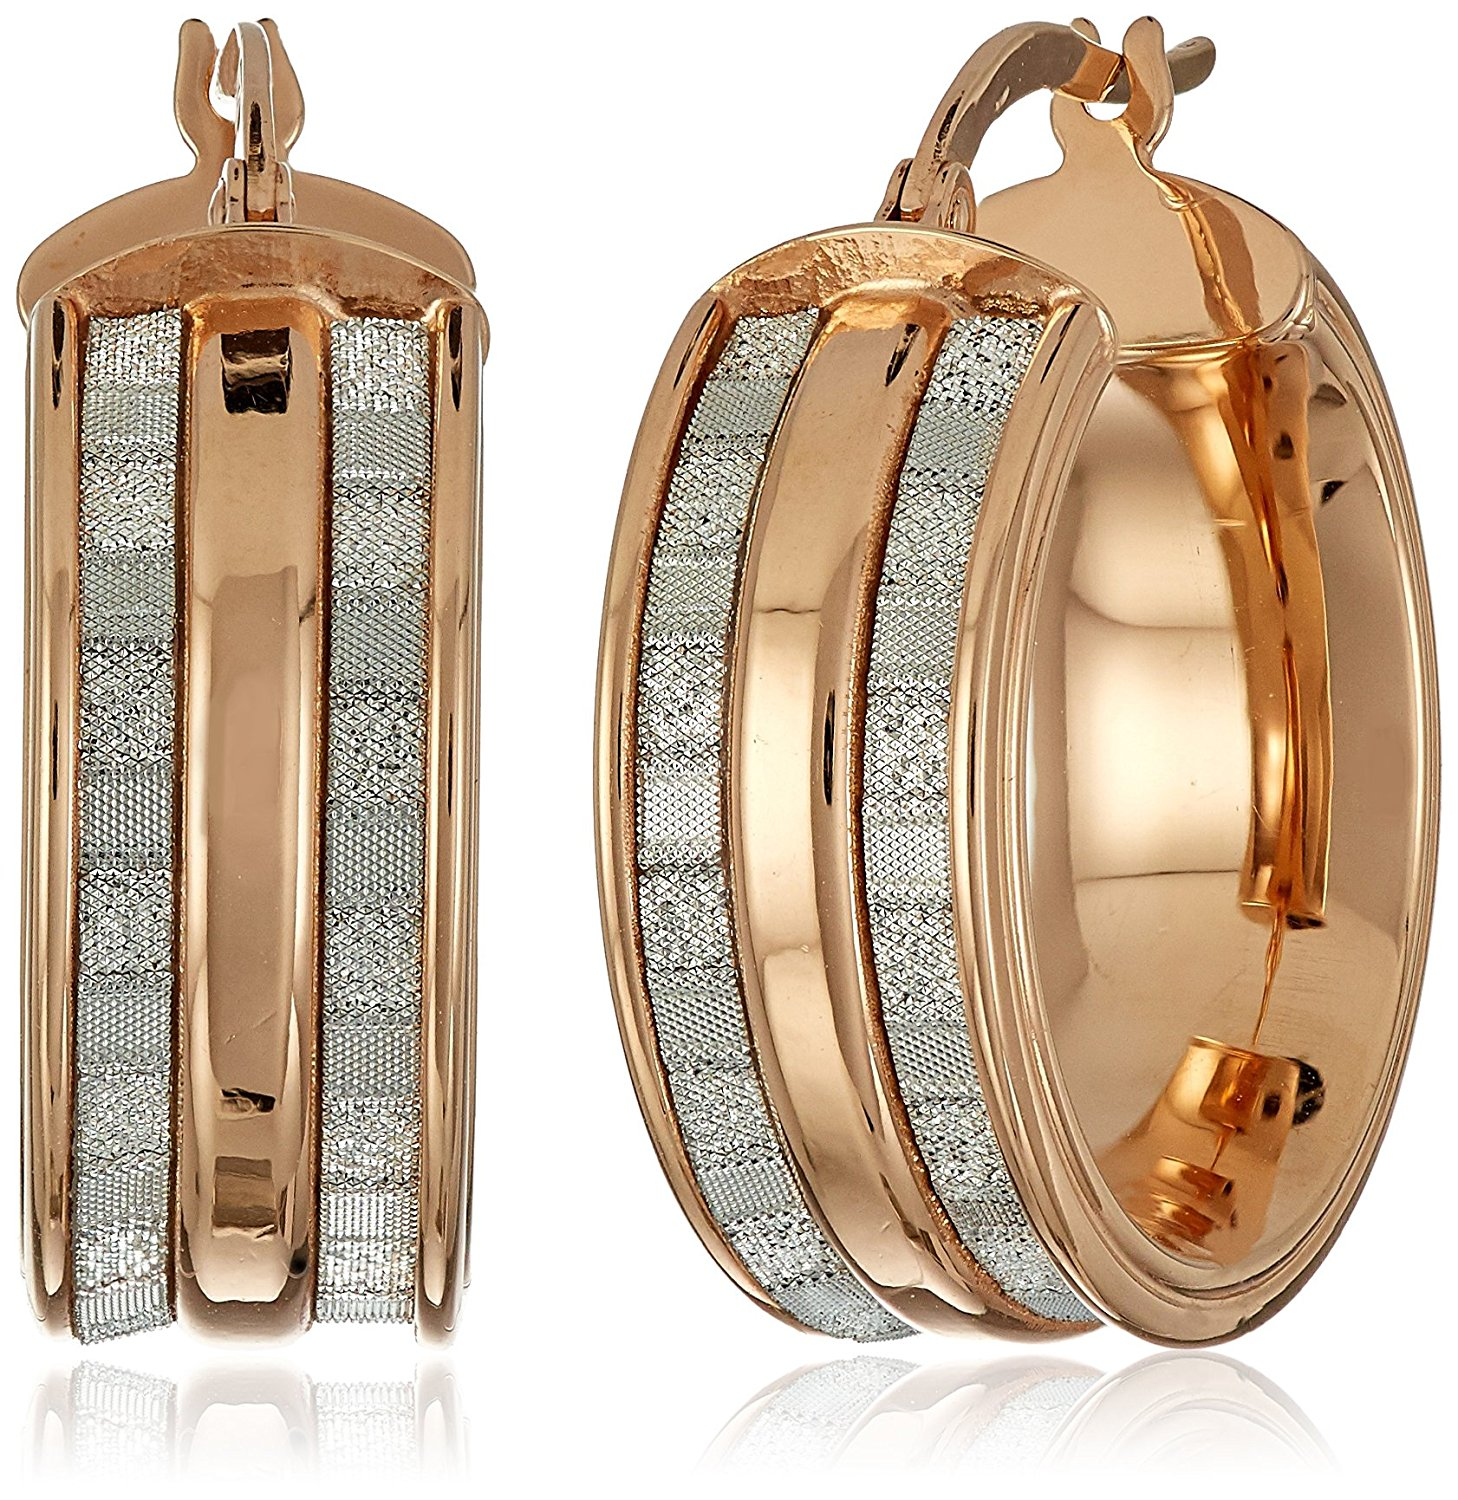 14k Gold Italian Wide Hoop Earrings with Dual Baguette Style Glitter Strips Hoop Earrings